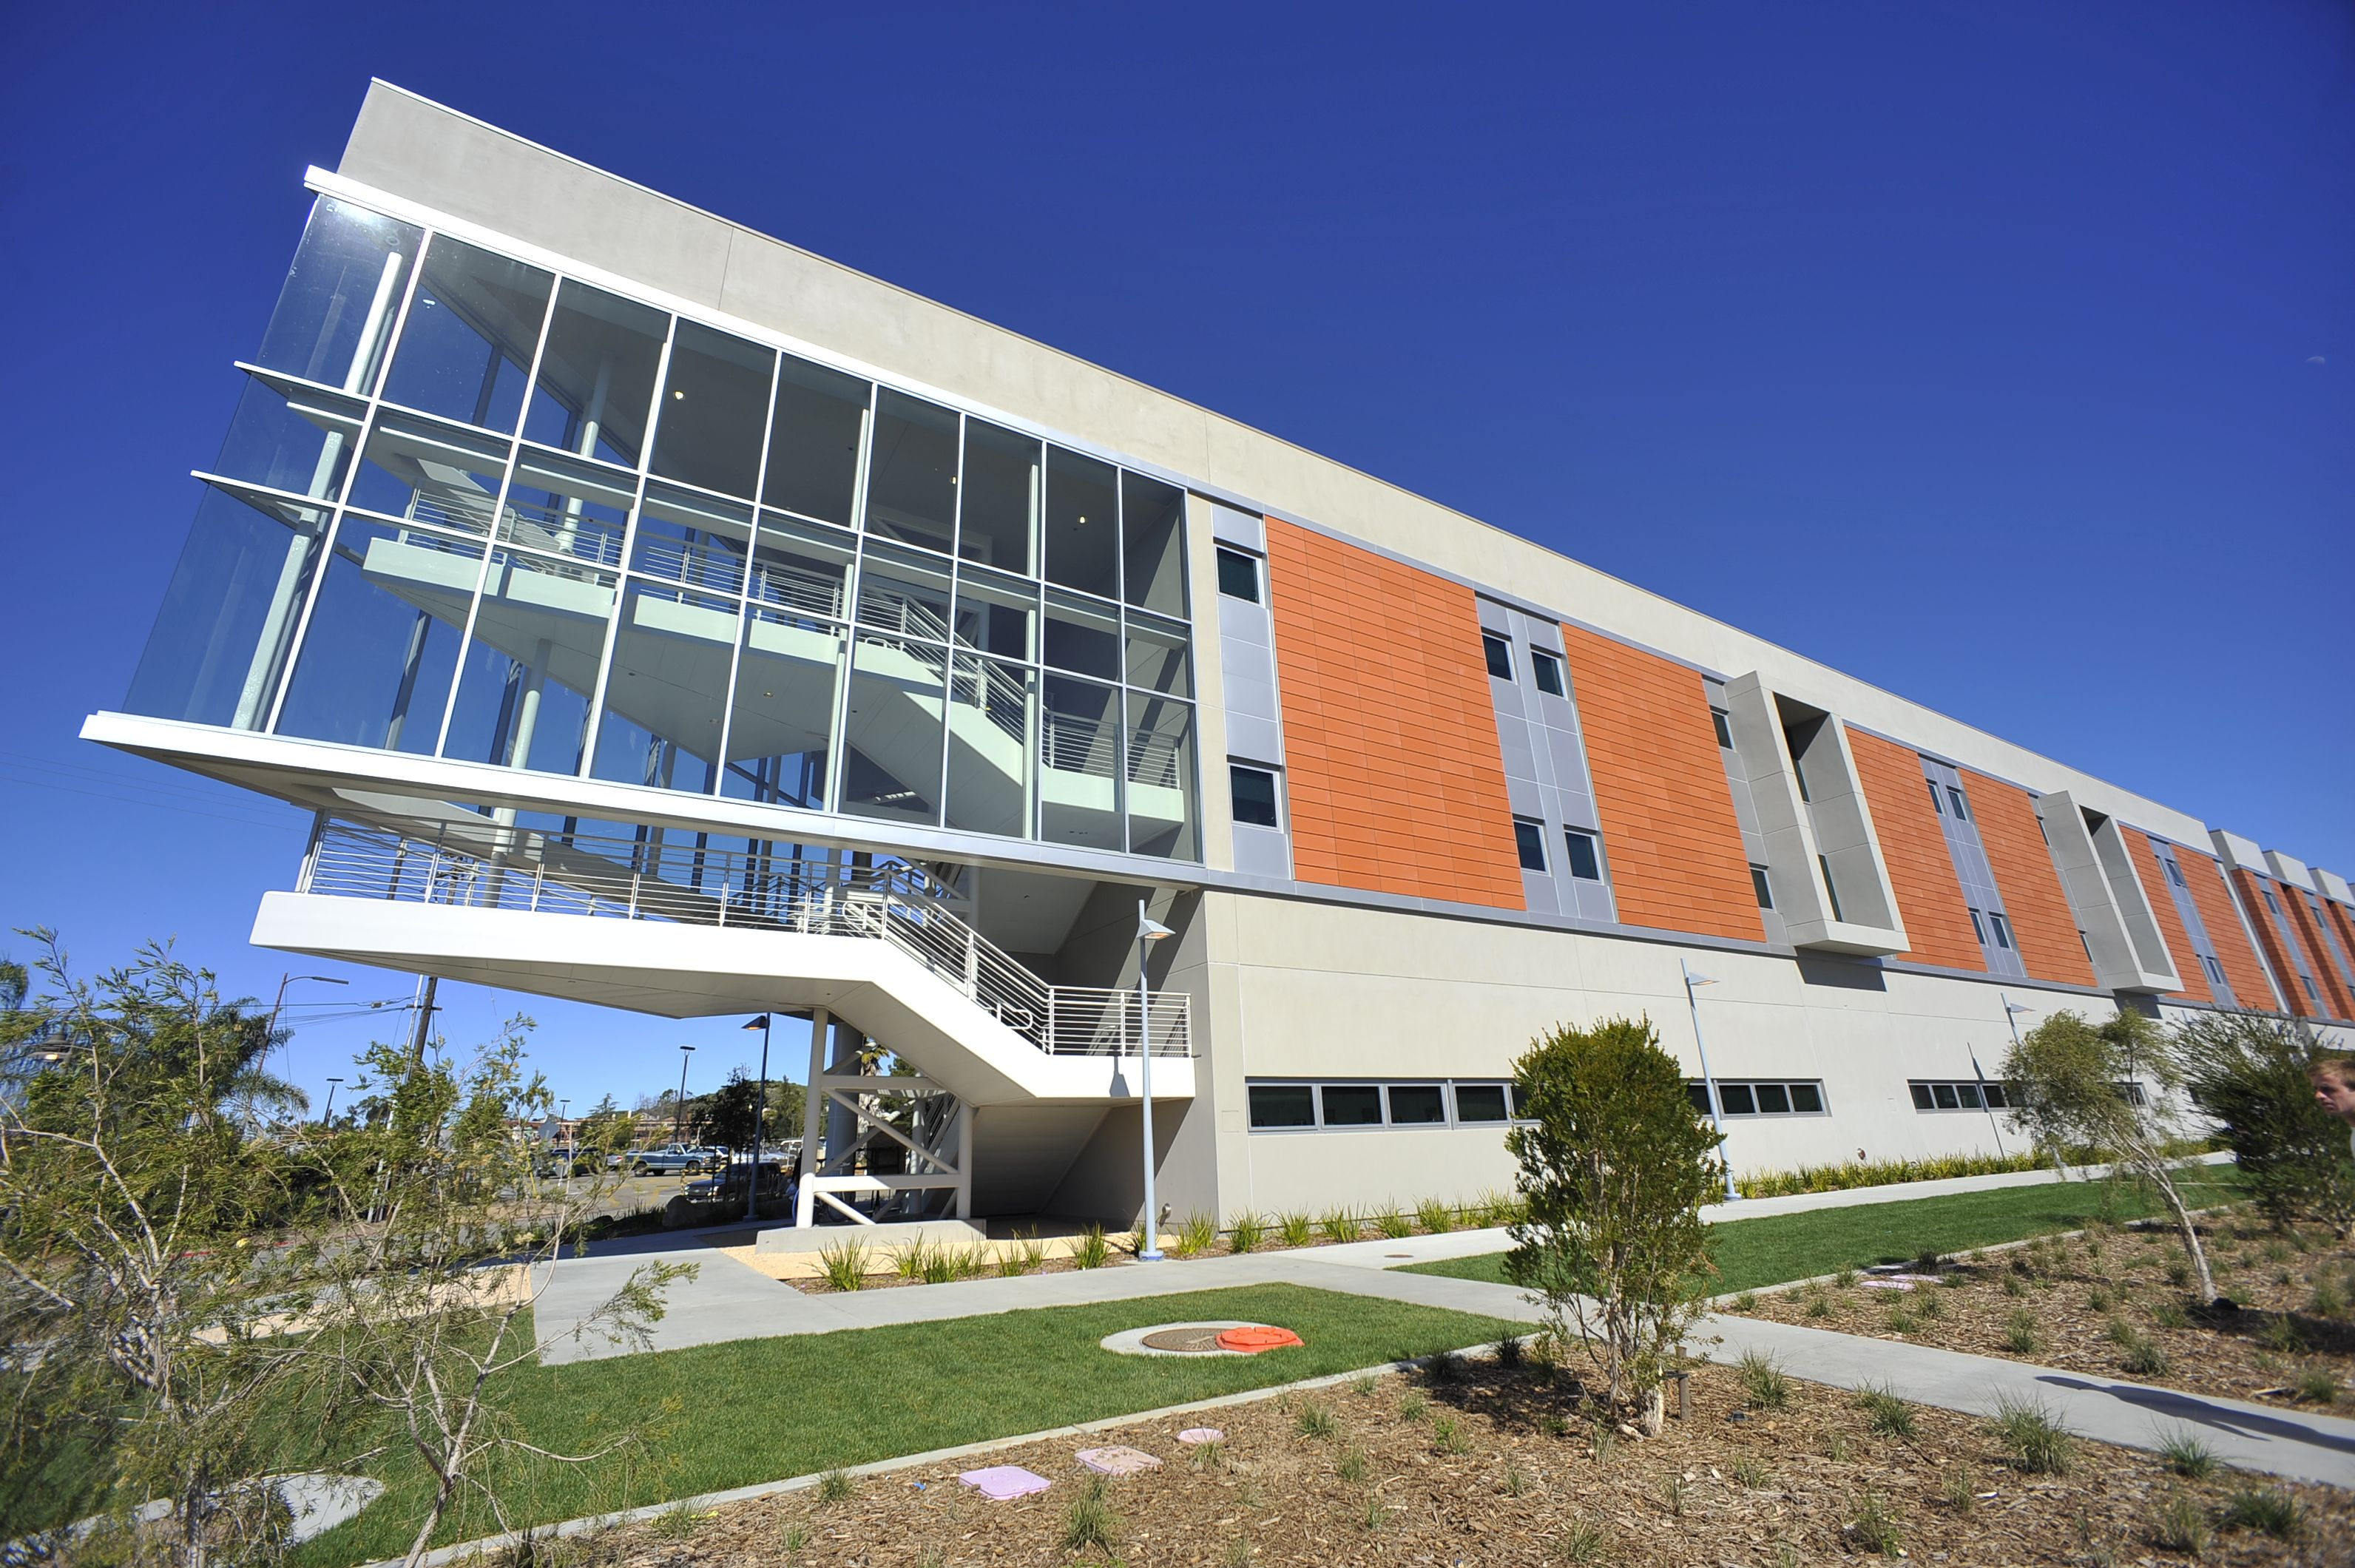 An Example Of The Design Flexibility Of Eifs This Building Showcases Exterior Insulation And